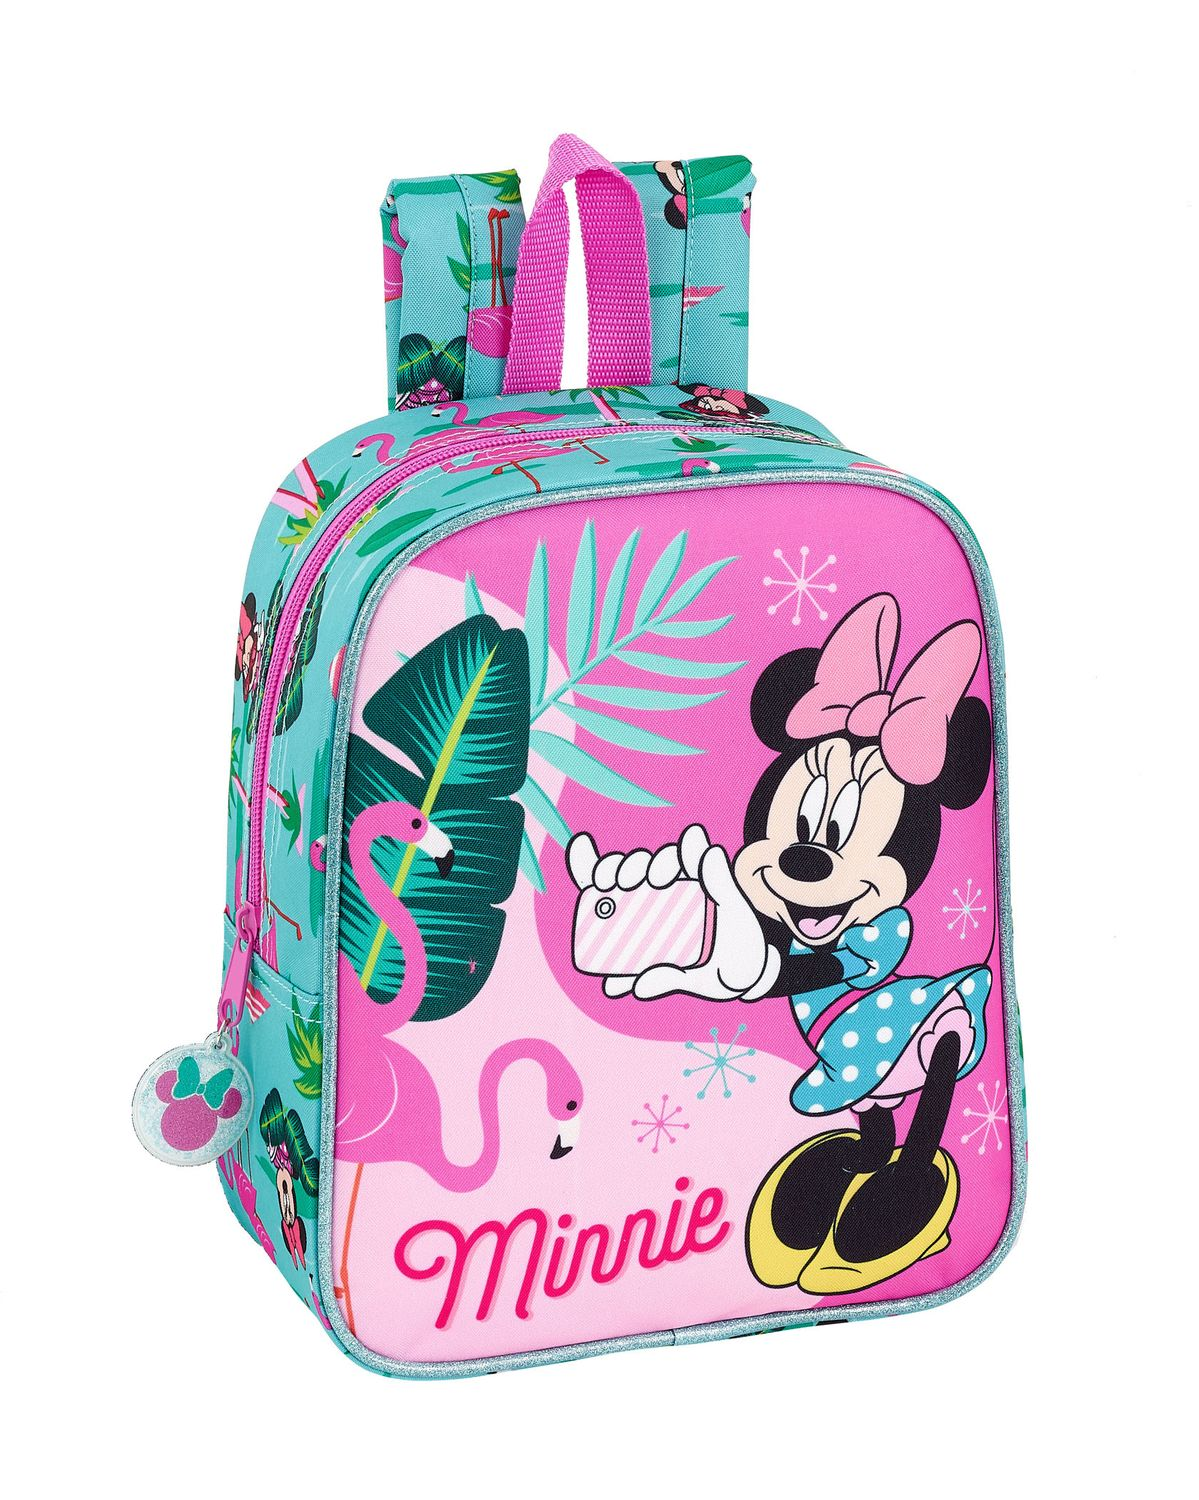 Disney Minnie Mouse Spring Palms Flamingo Junior Rucksack Backpack 27 cm  – image 1